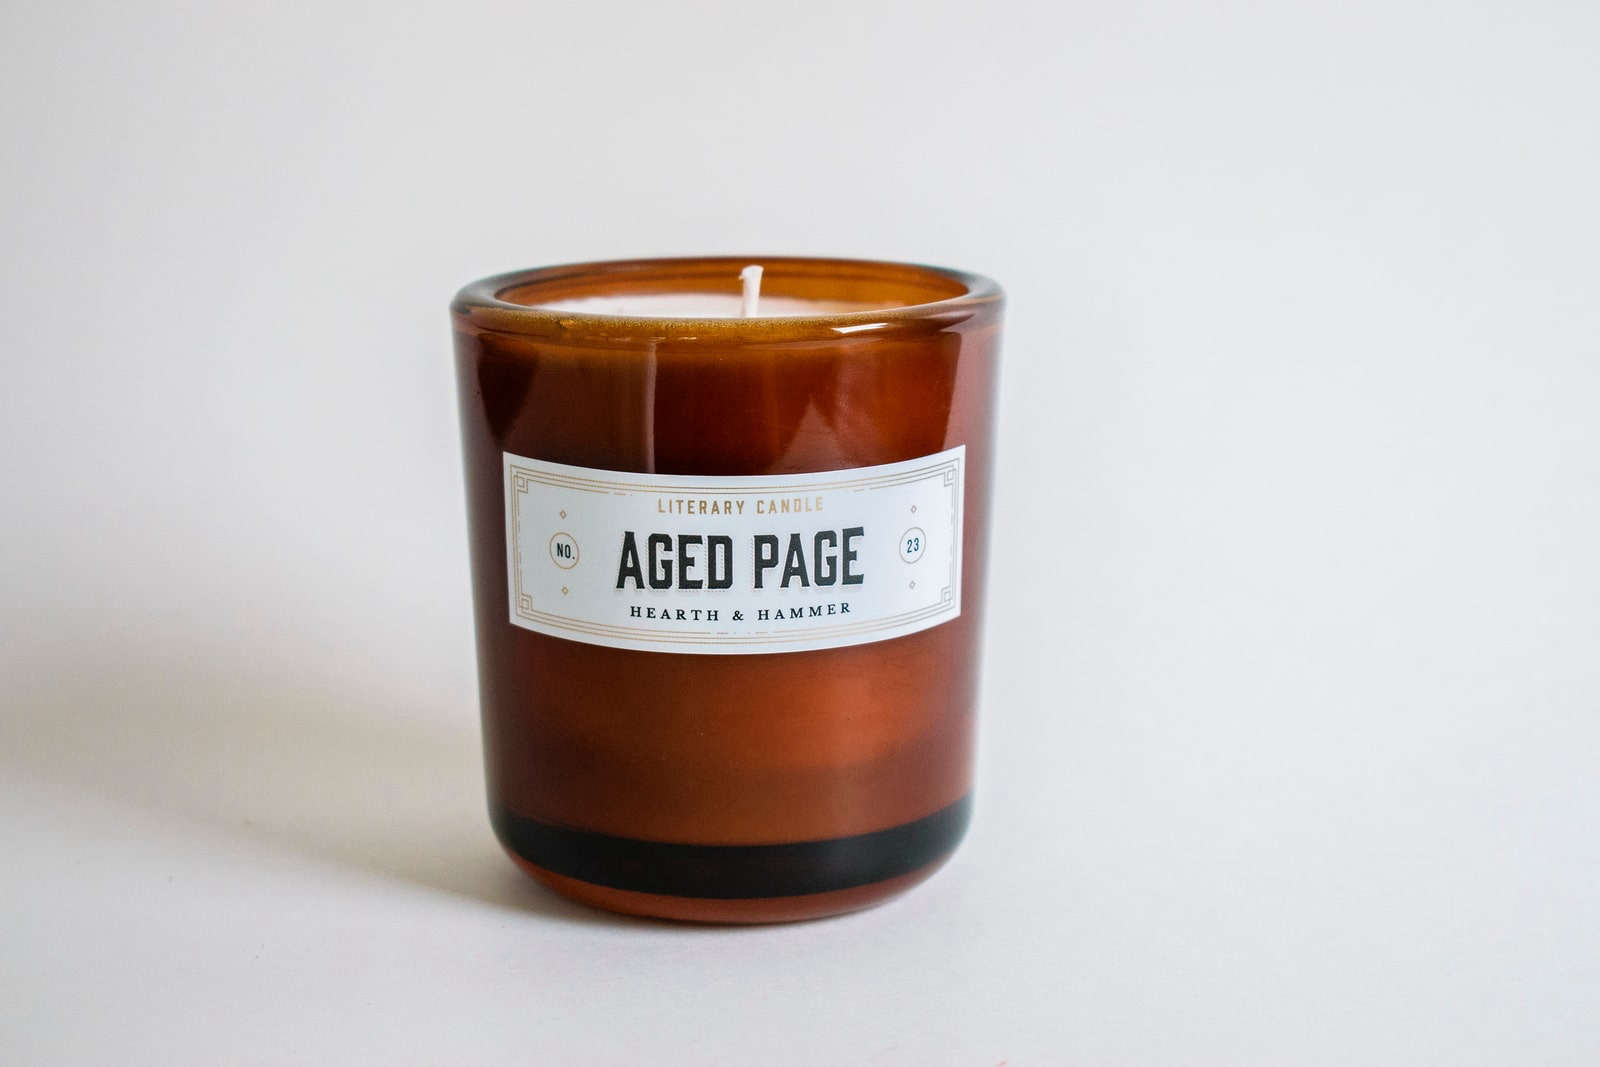 hearth and hammer aged page literary candle 11